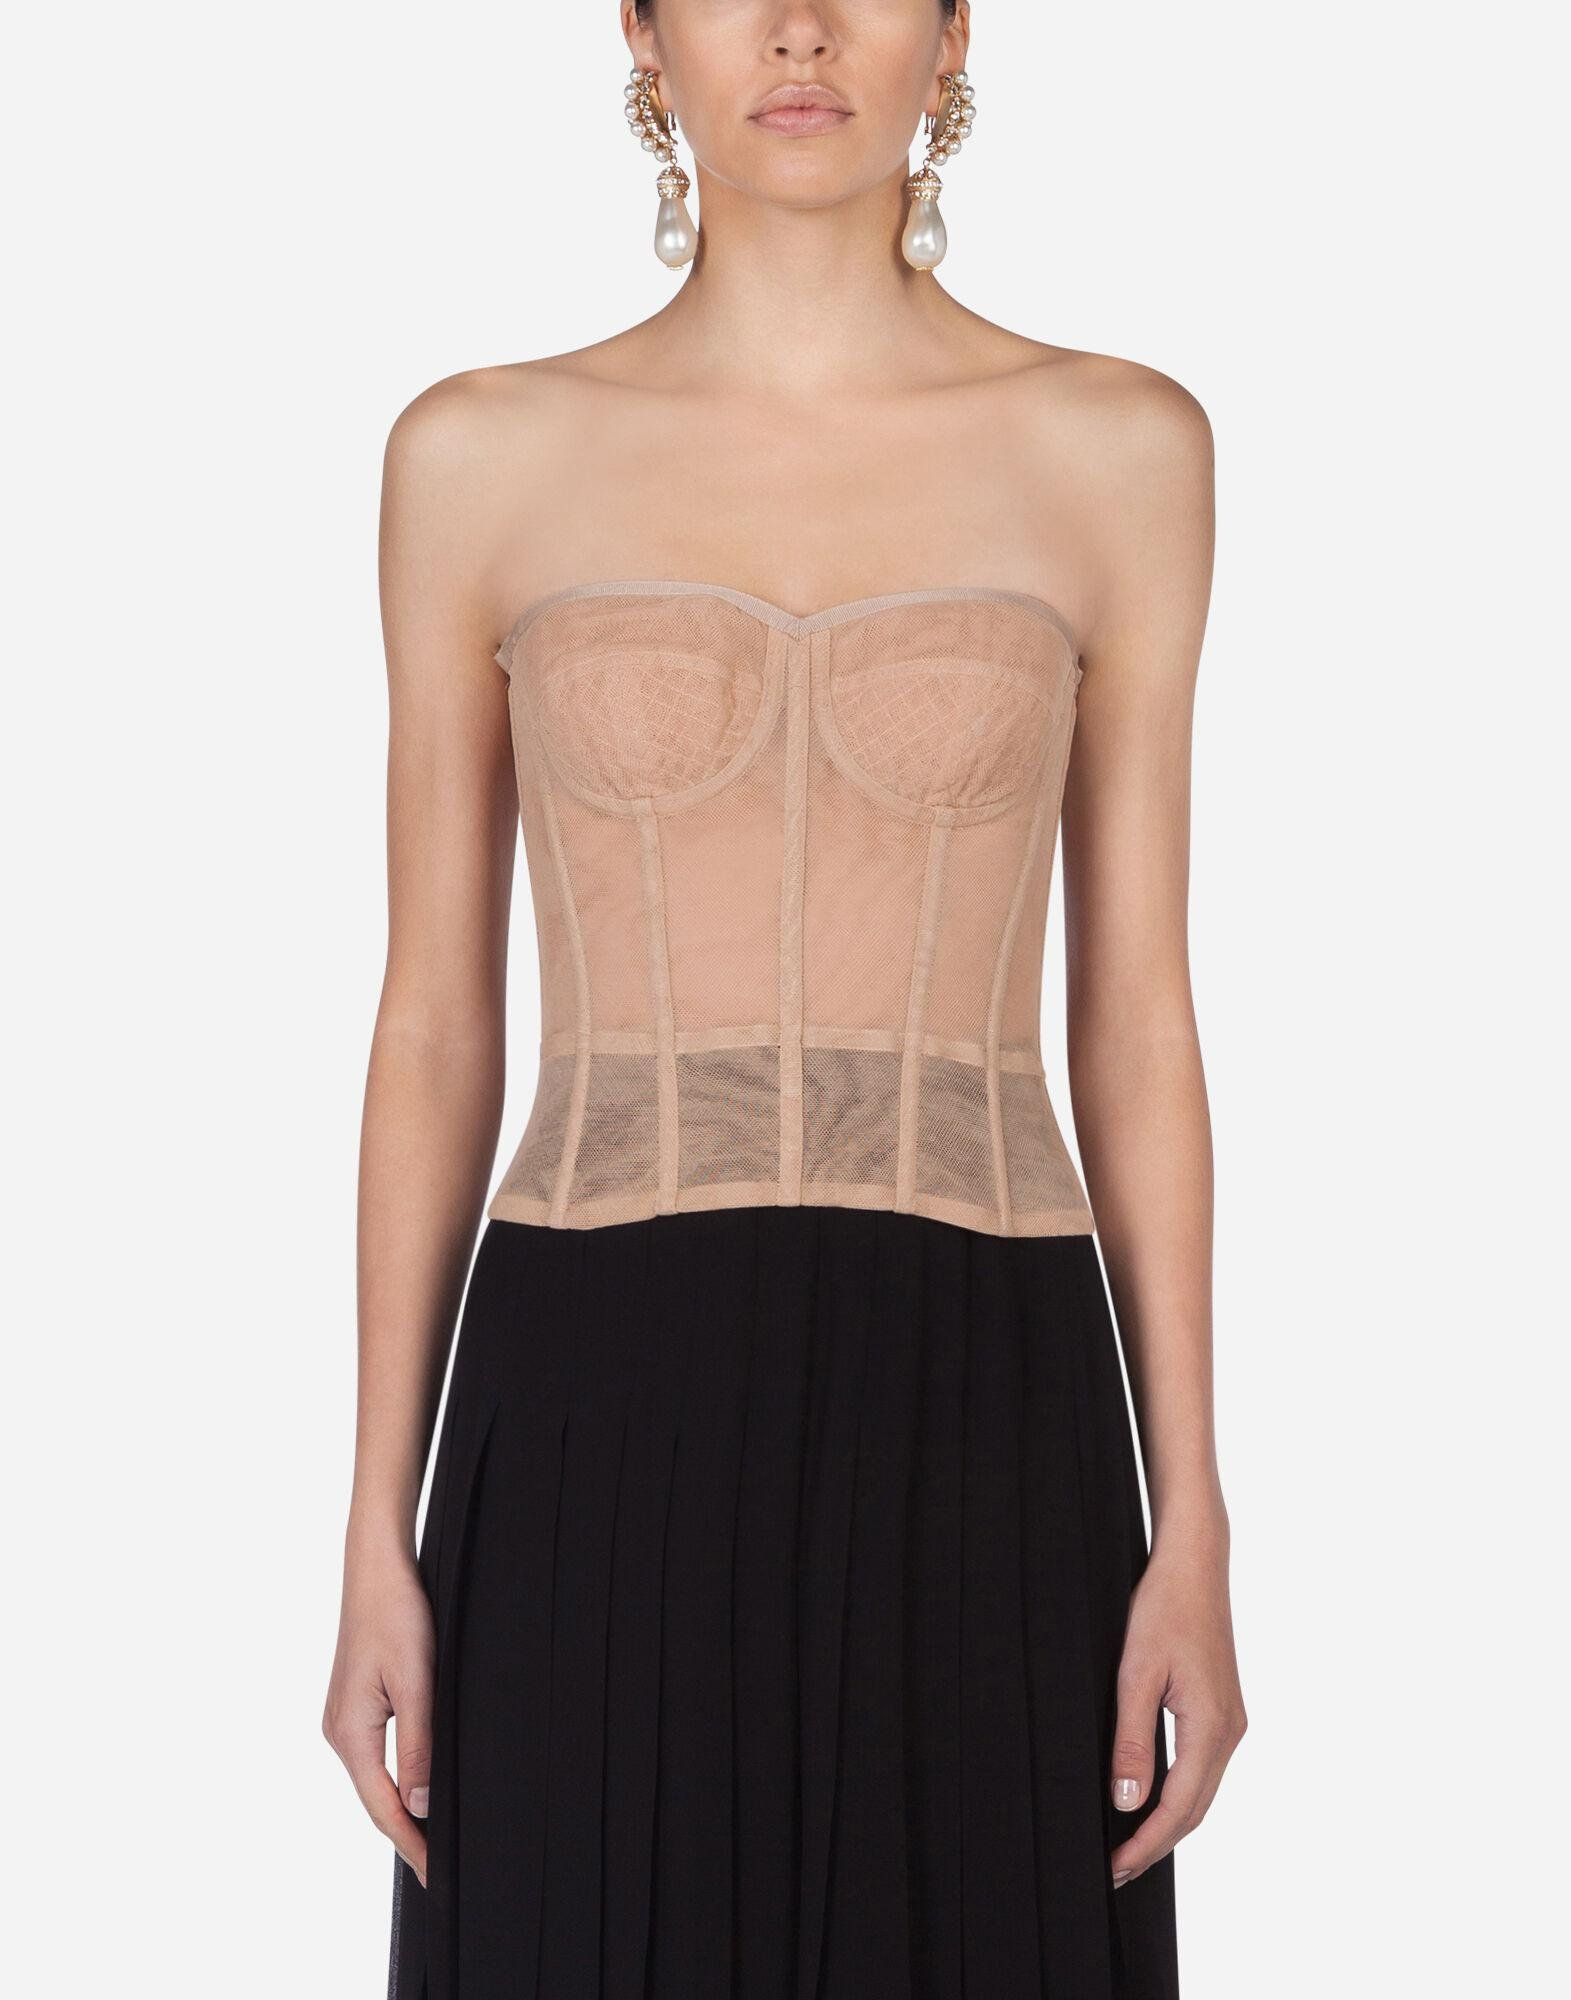 Tulle bustier